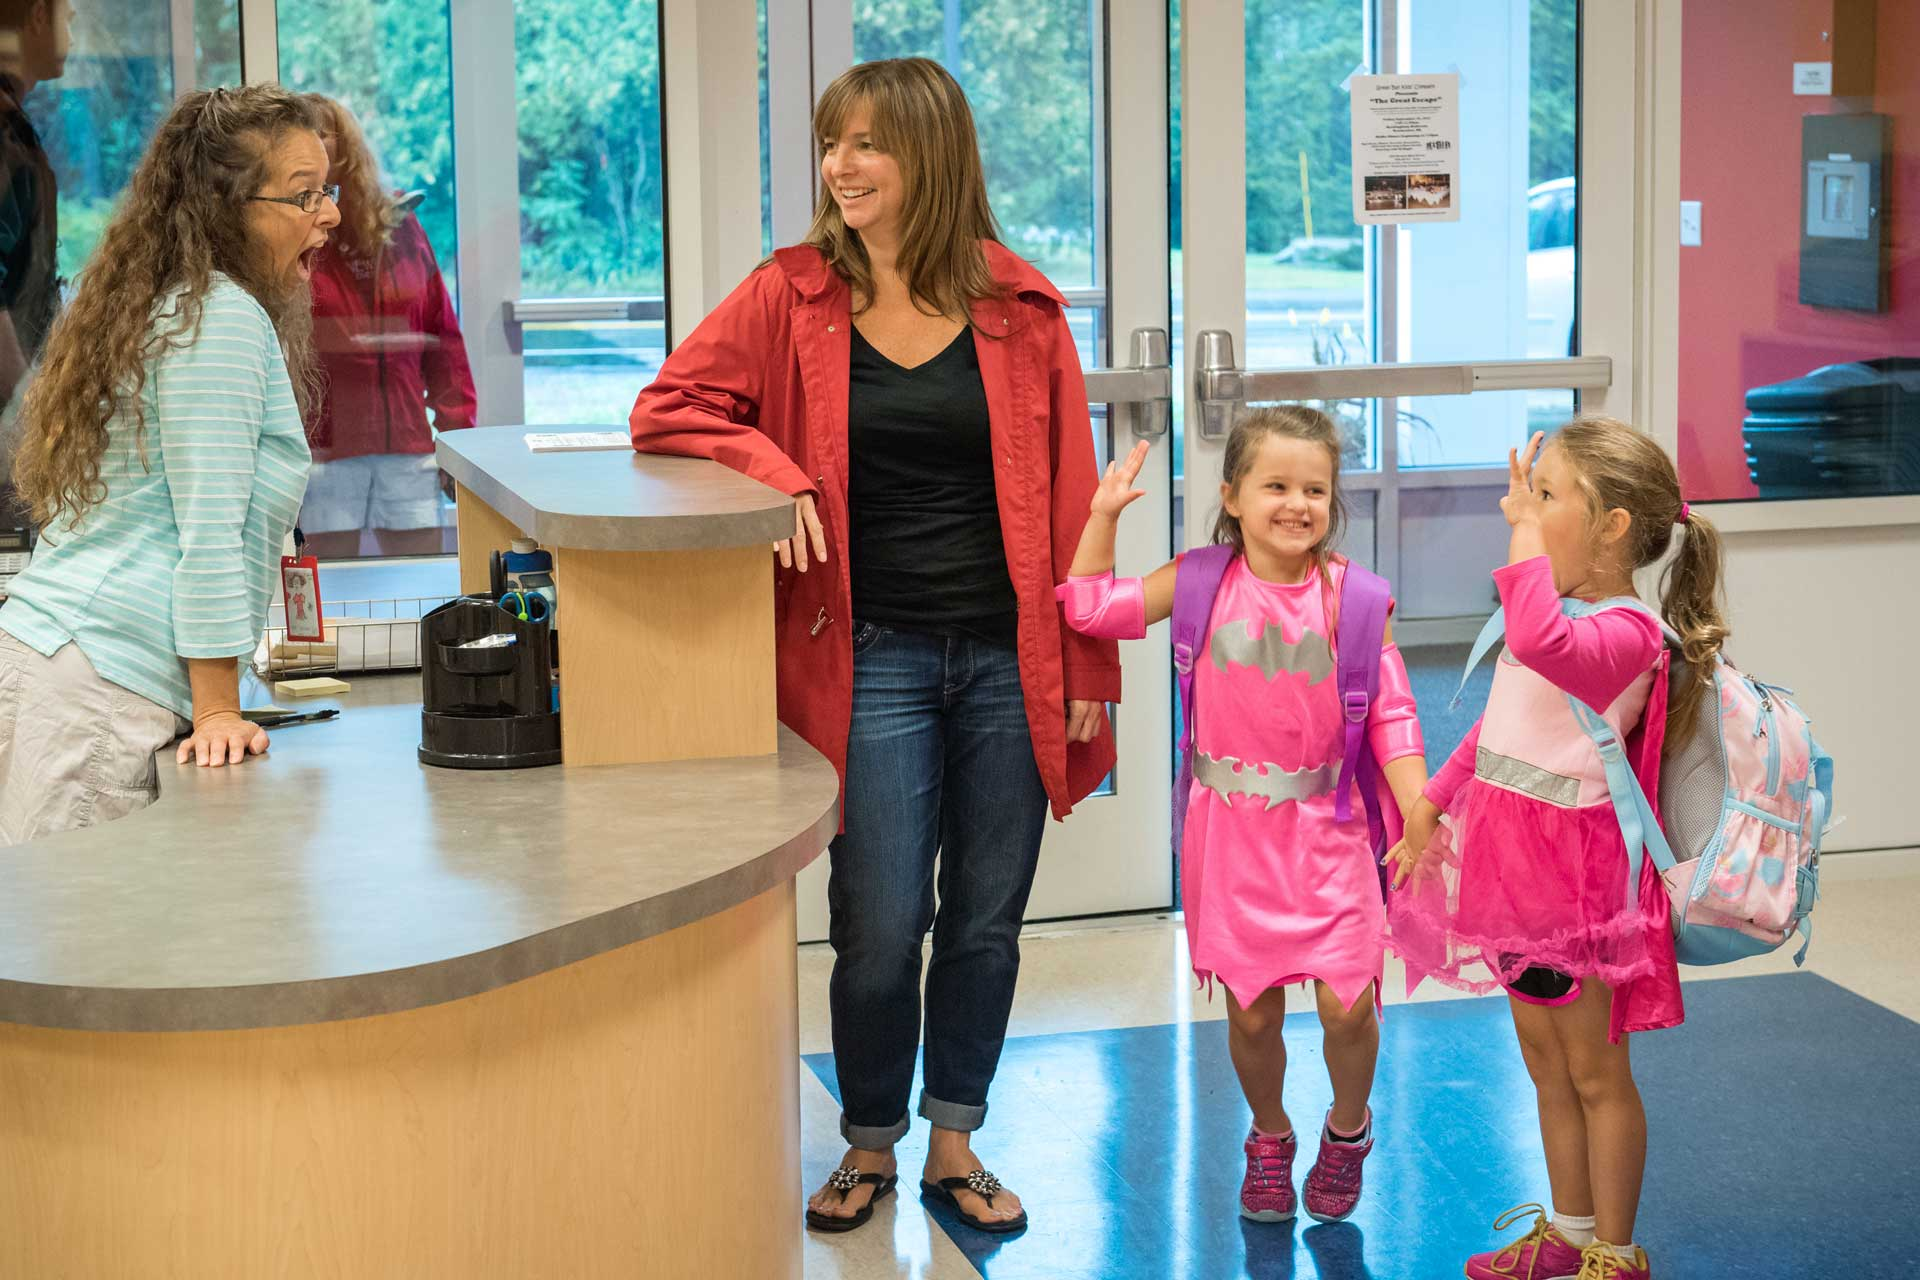 Woman at child care center feigns surprise when two little girls arrive in pink costumes